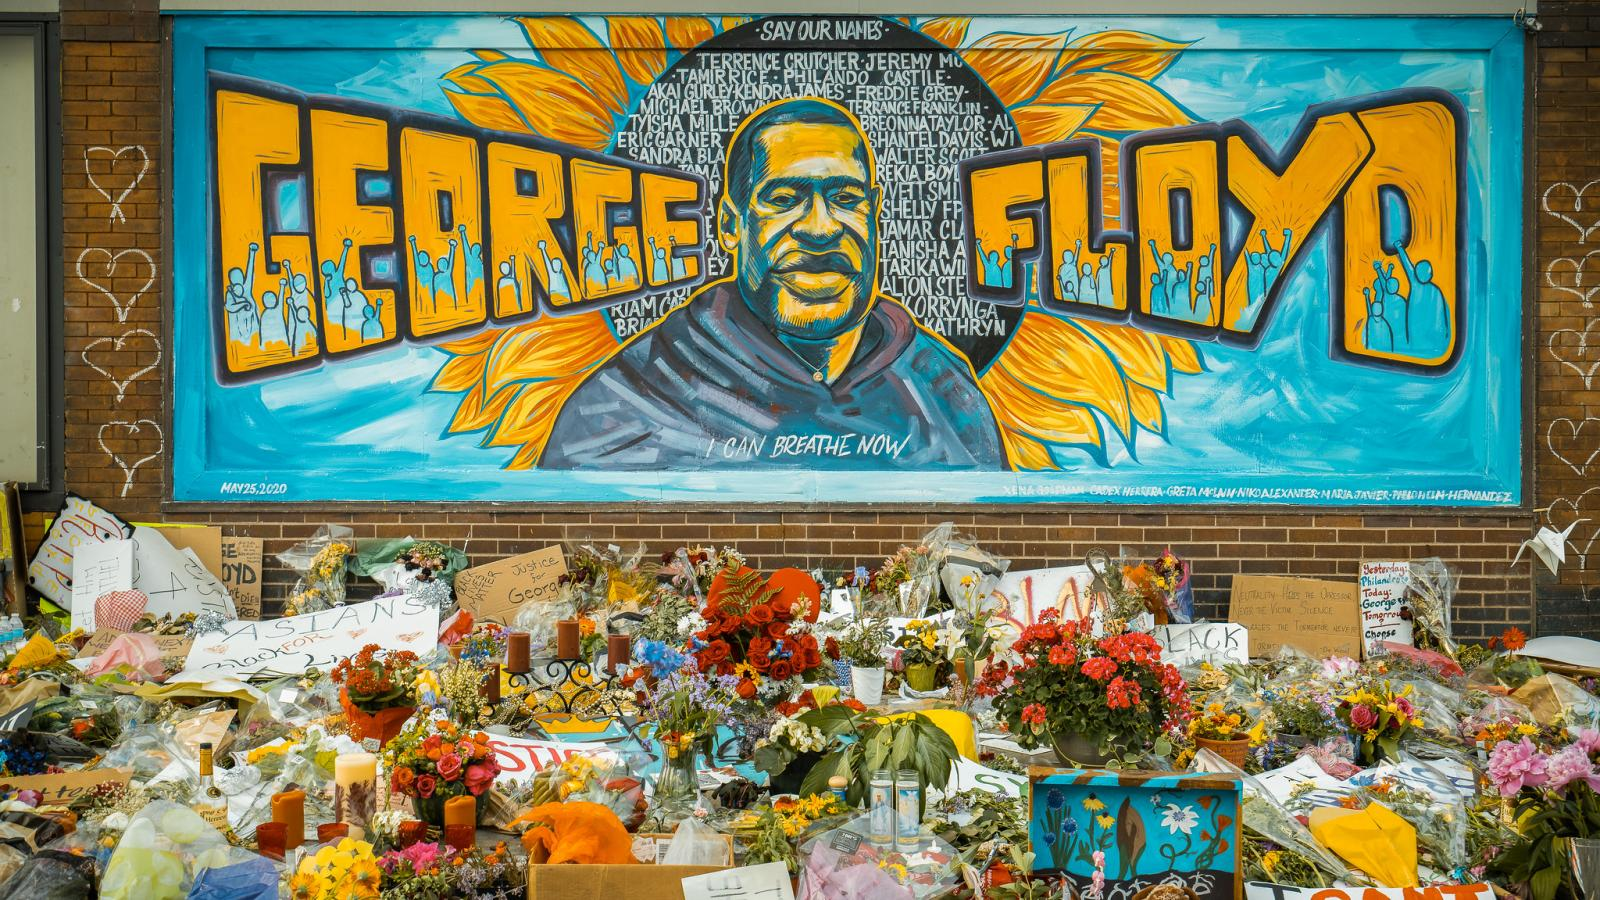 A painting of George Floyd on a building side with flowers in front of it.